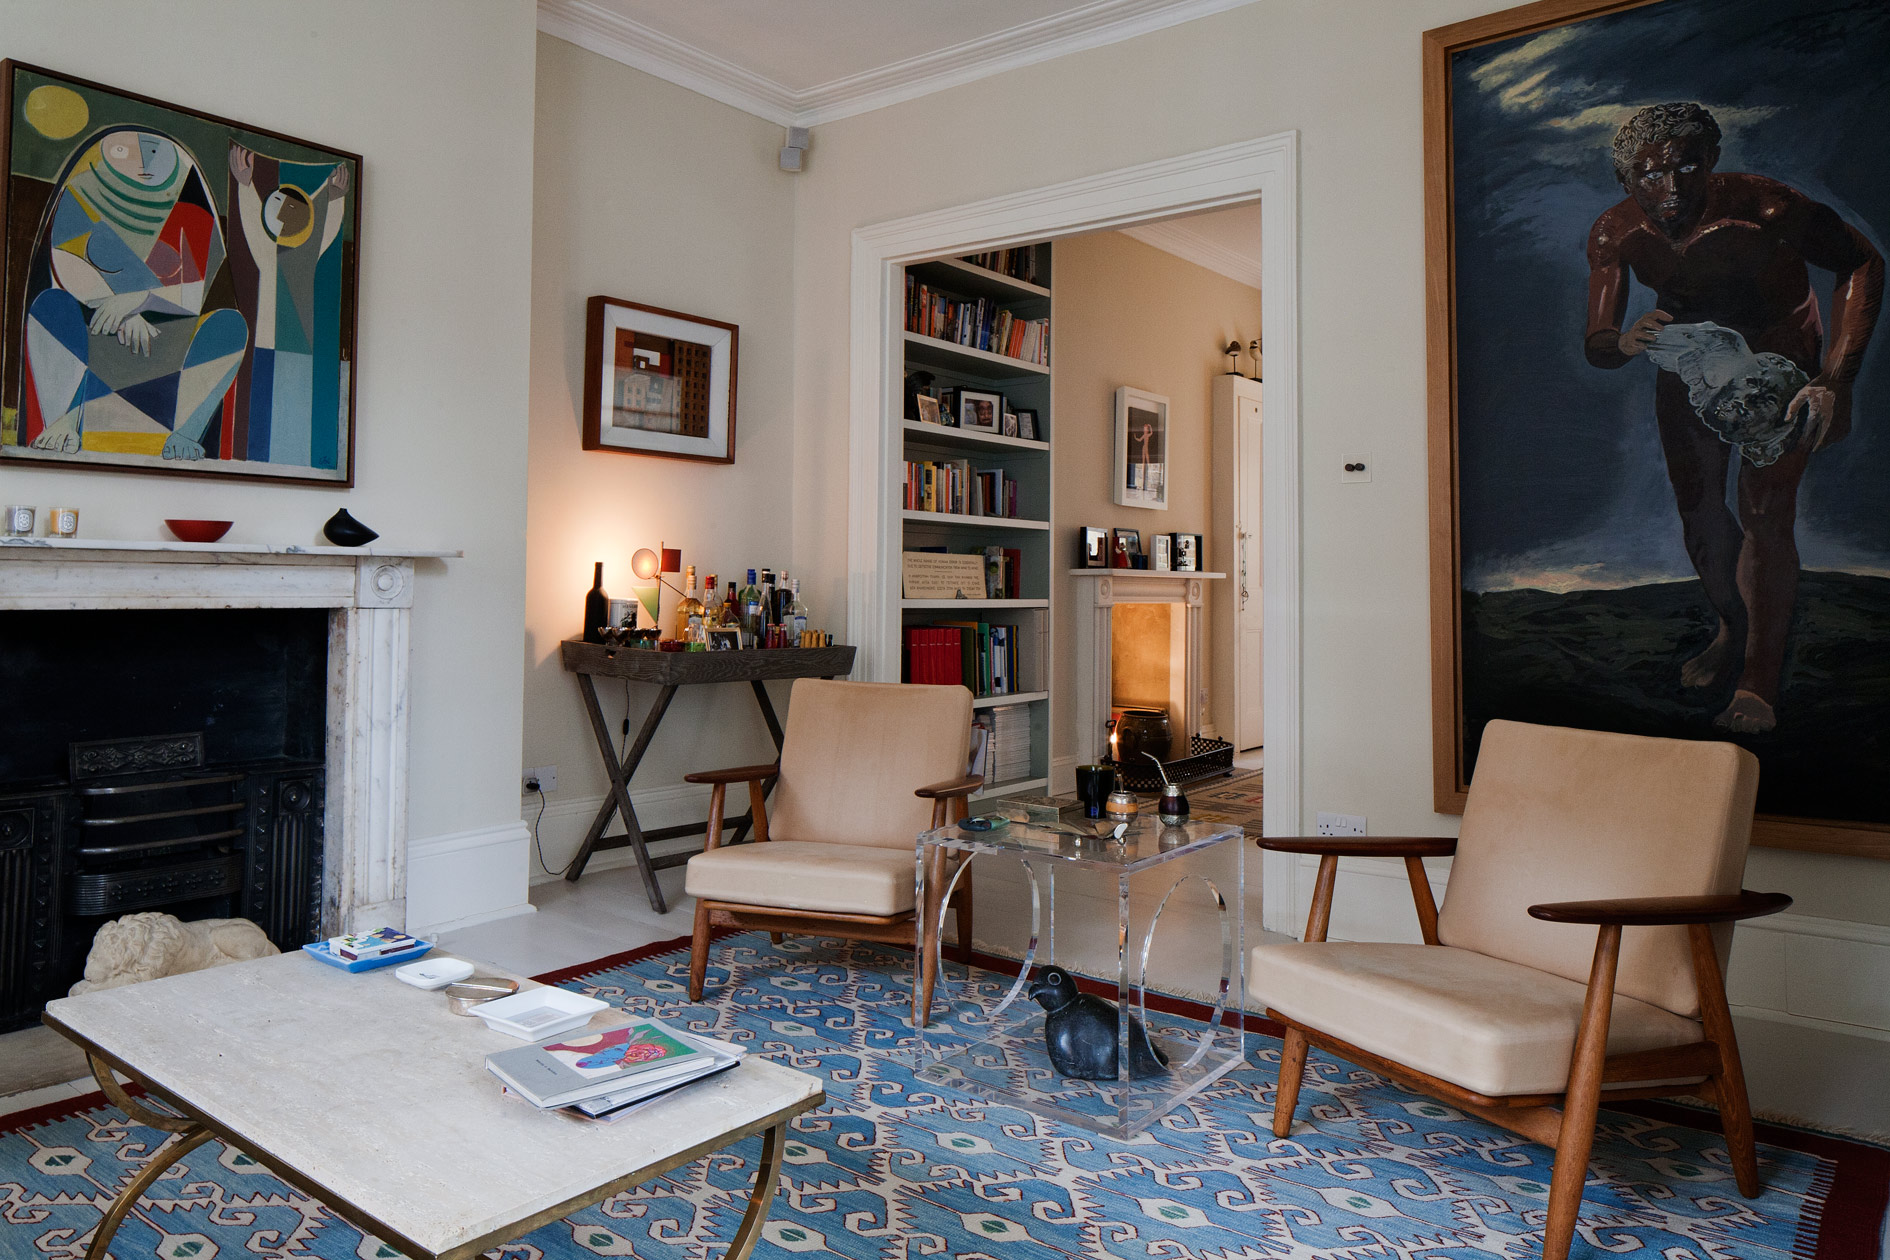 Interiors of bookcases are painted in colours inspired by the adjacent paintings and outside view